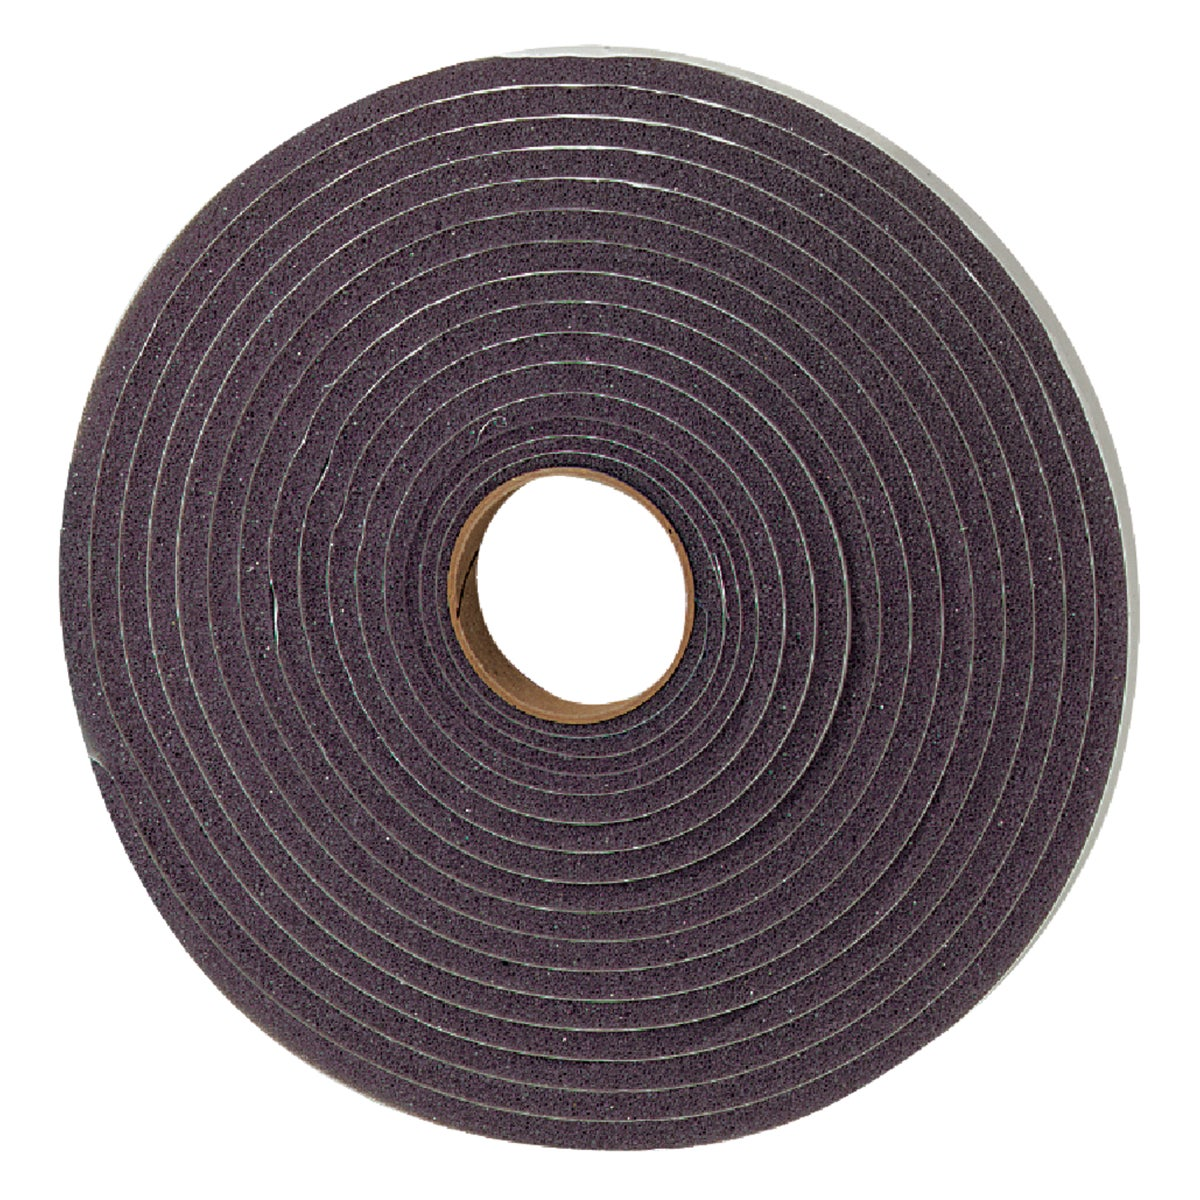 "3/16X3/8""X17' FOAM TAPE - 02055 by M D Building Prod"